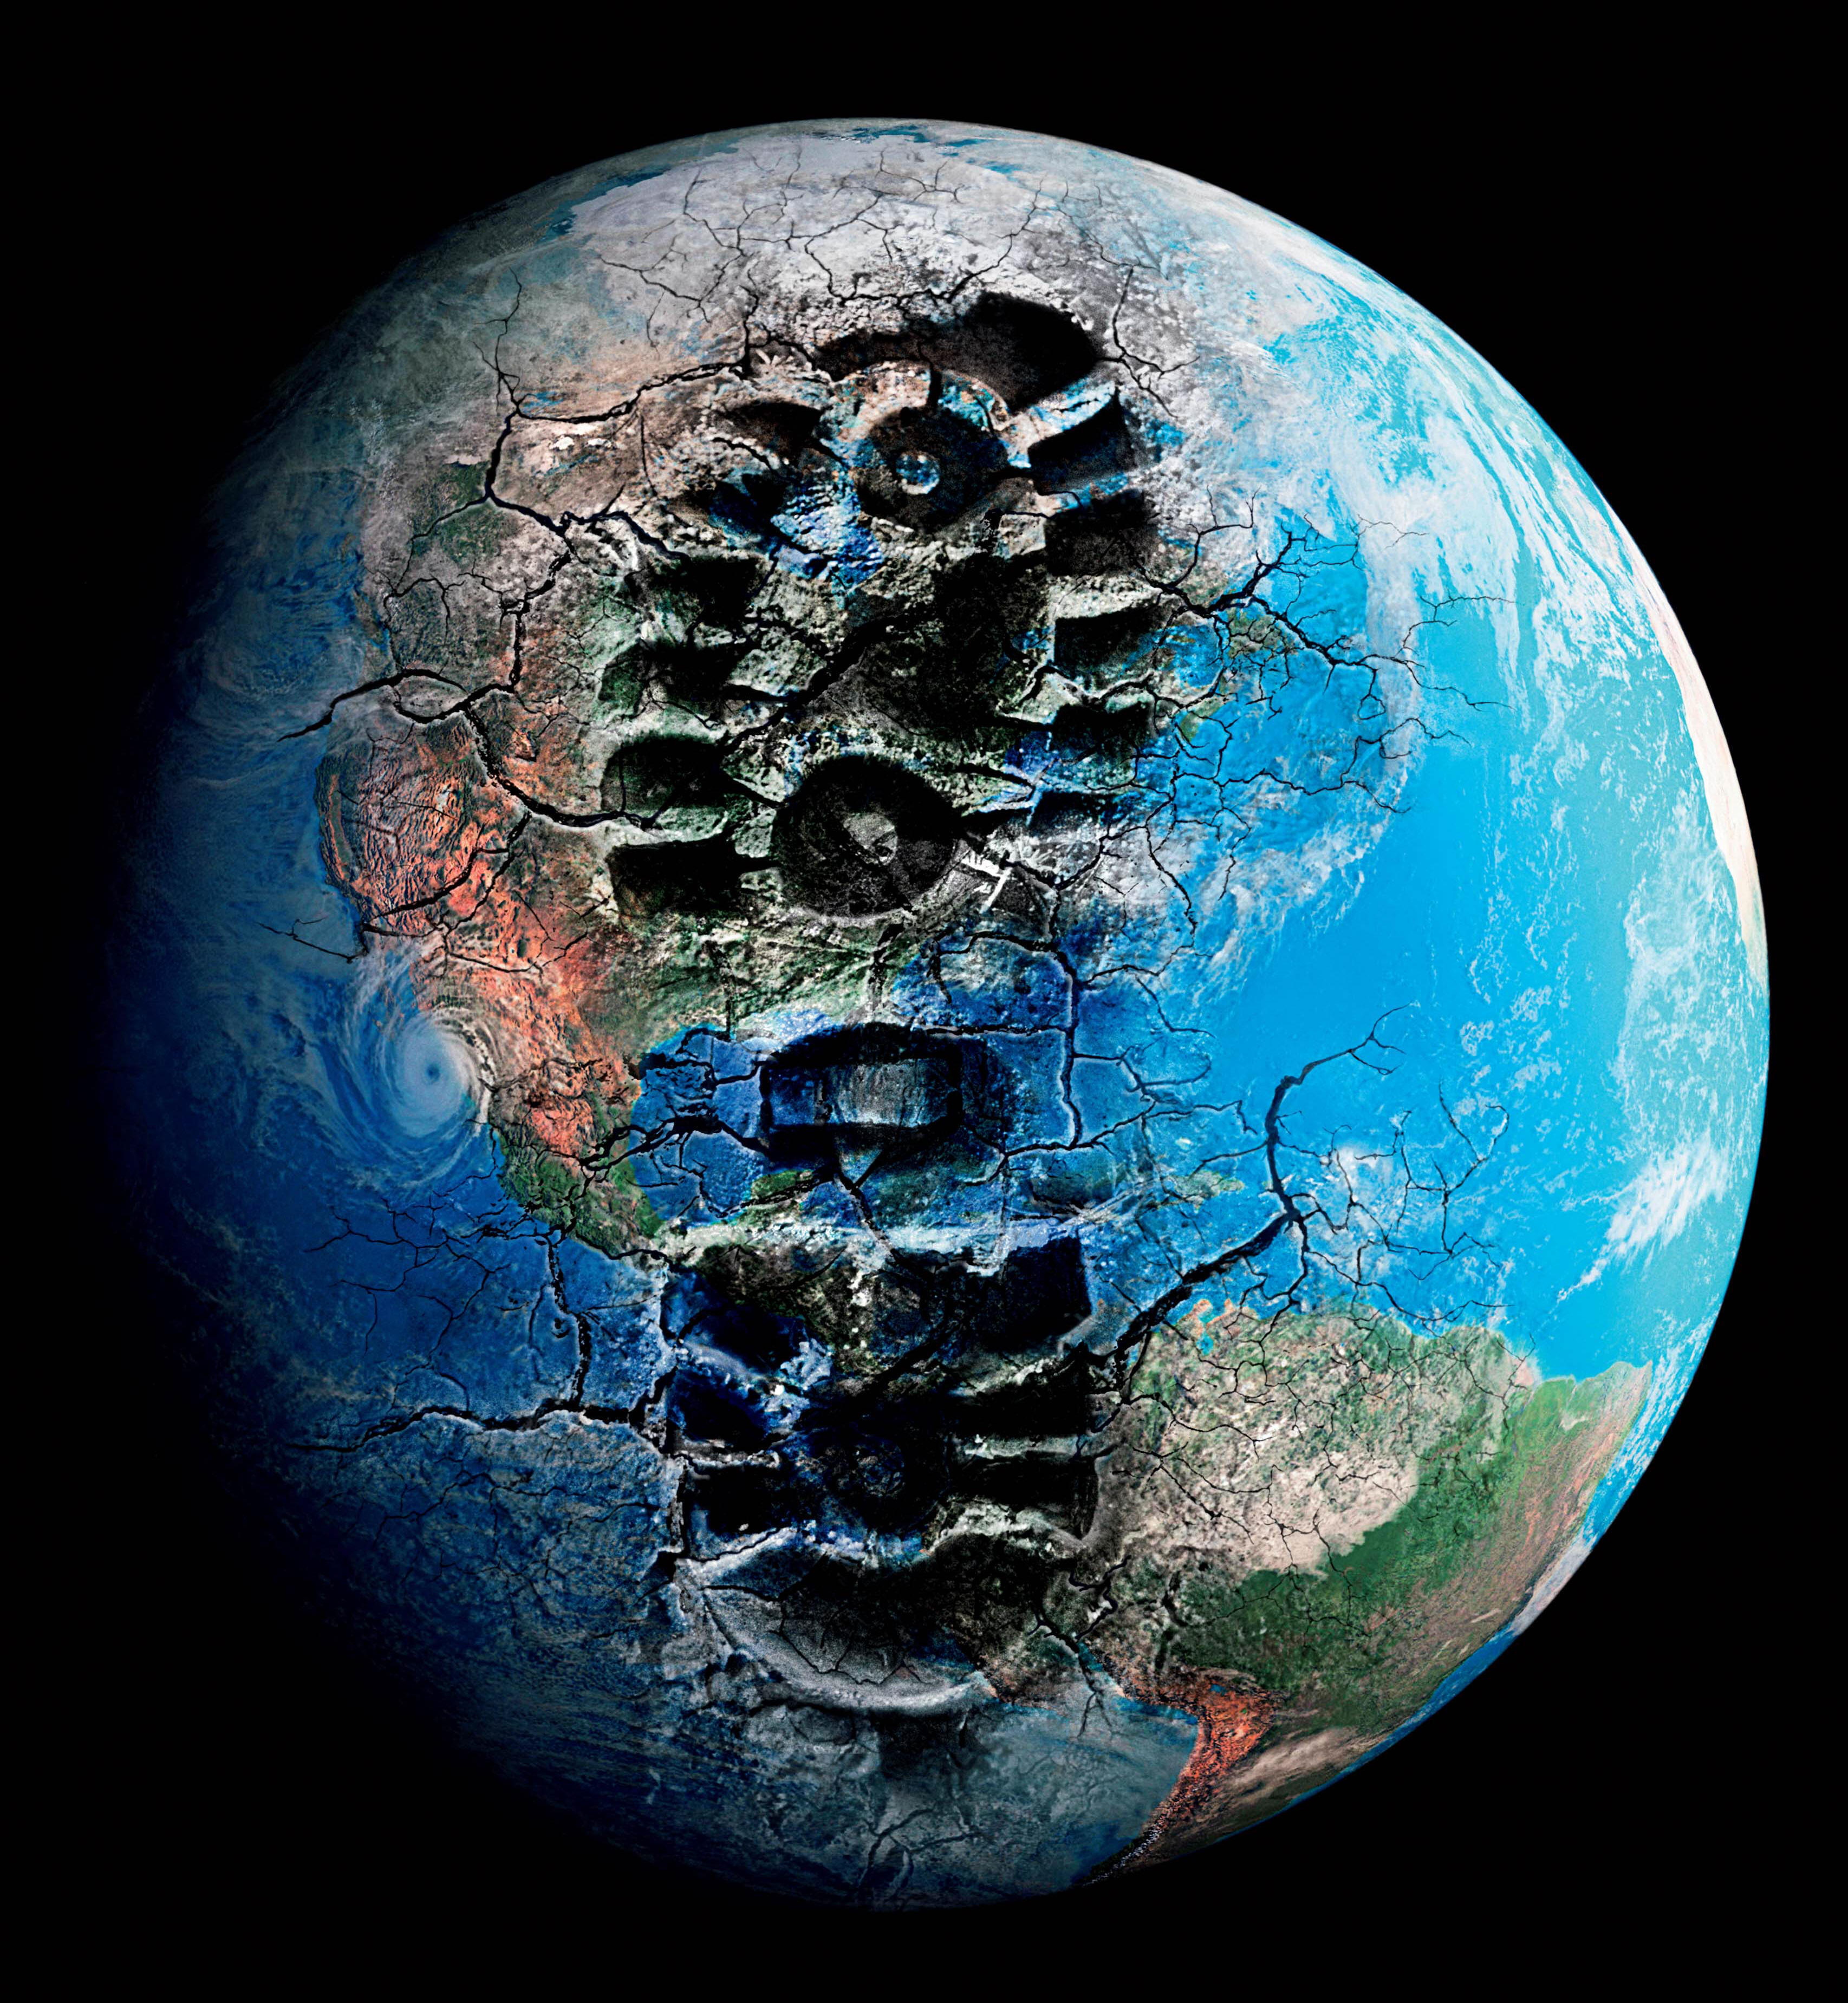 Planet Earth: ours to have and to hold, or to destroy and make extinct